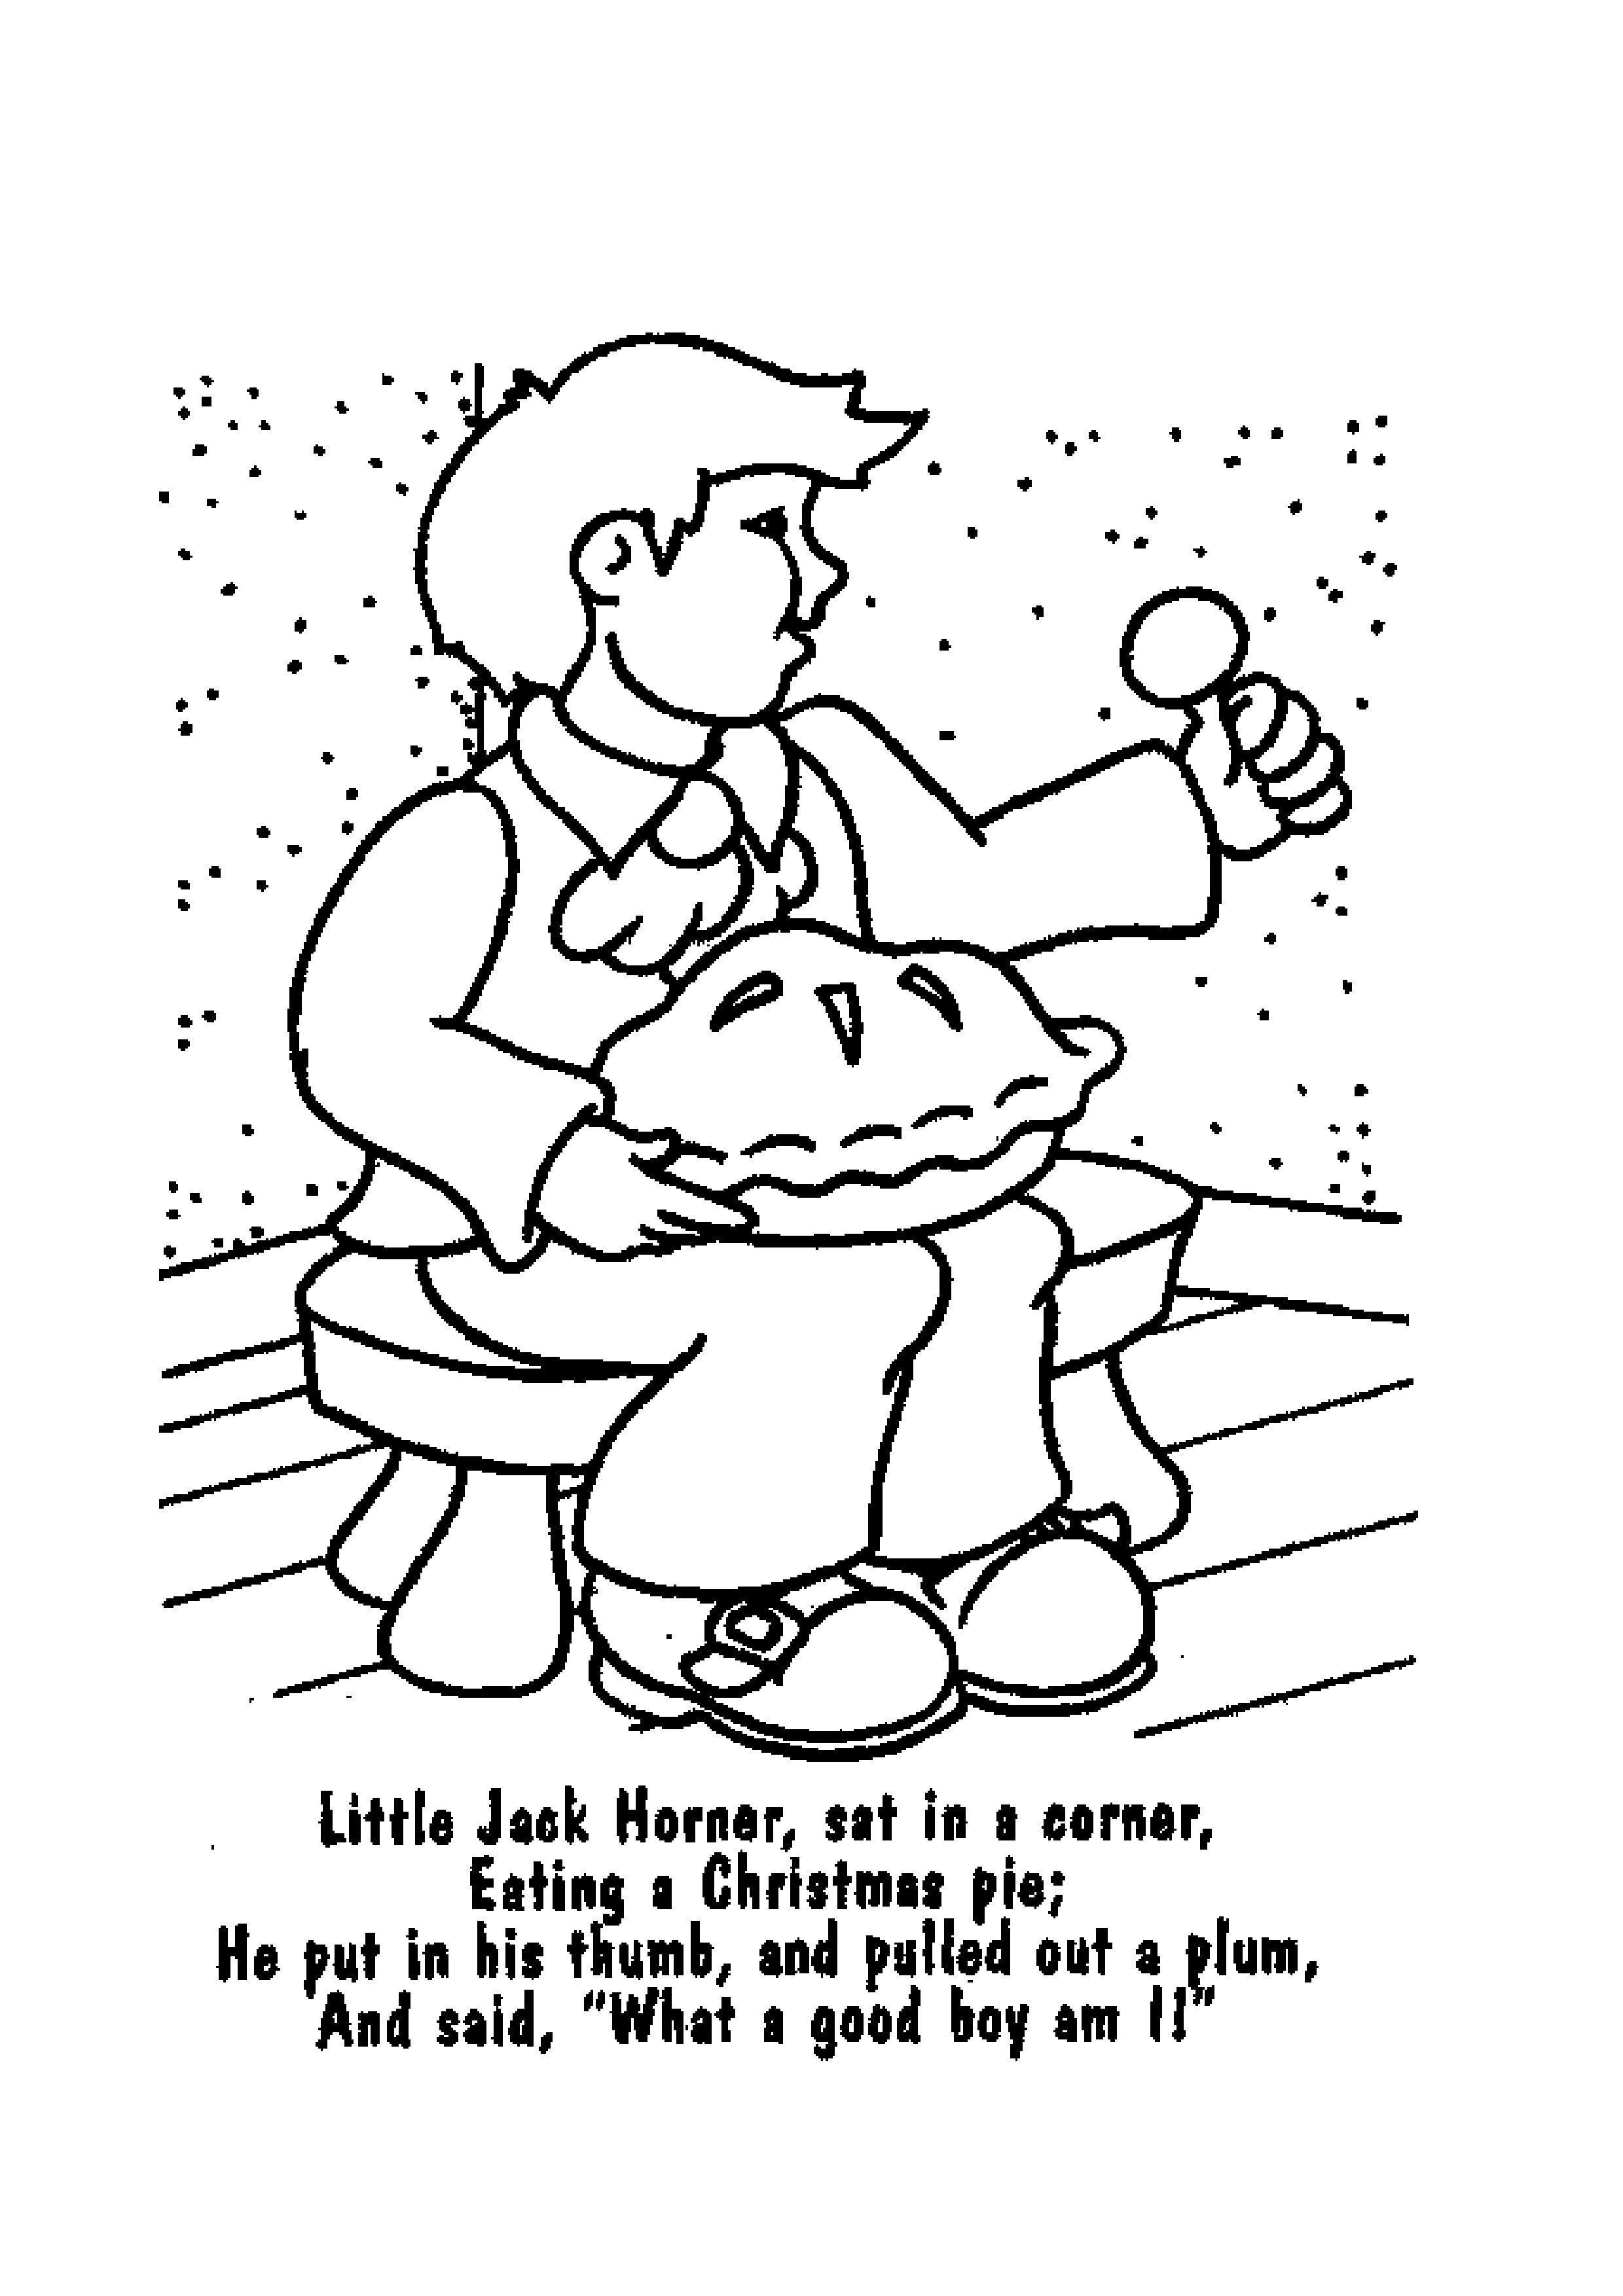 Nursery Rhymes Coloring Pages Printable Free Nursery Rhymes Nursery Rhymes Preschool Preschool Coloring Pages